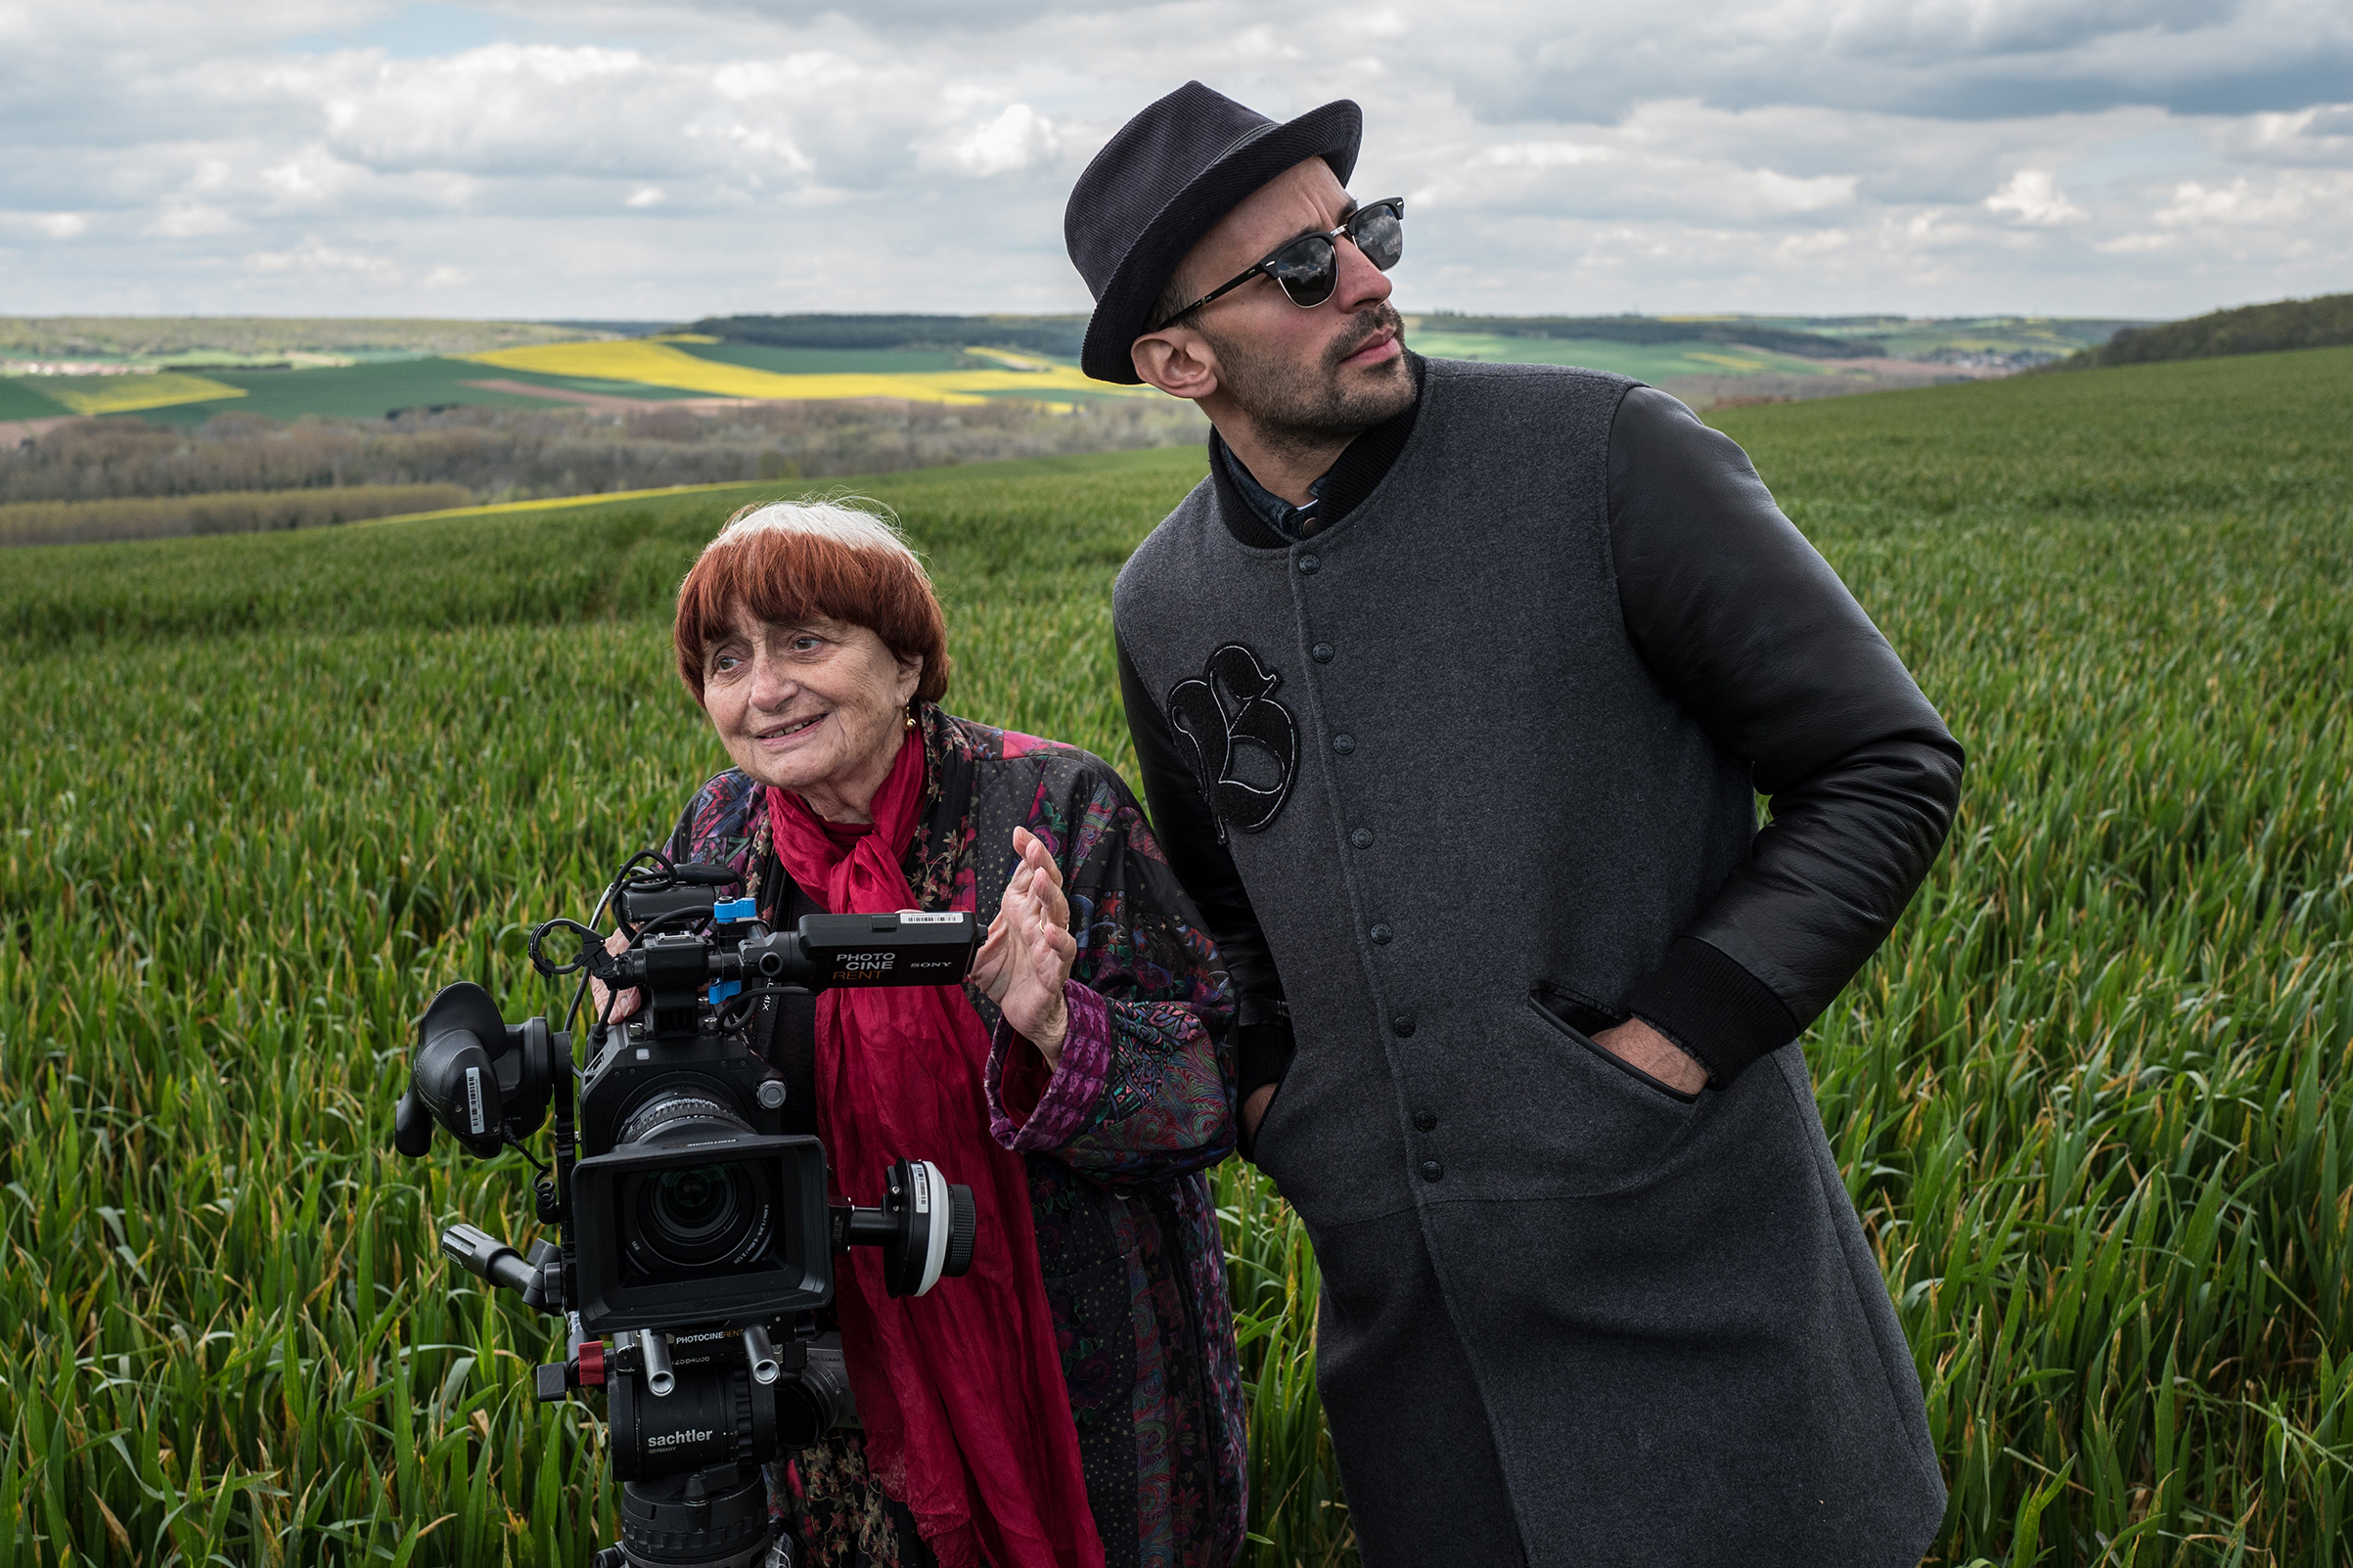 Filmmaker Agnès Varda and French street artist JR co-directed Faces Places